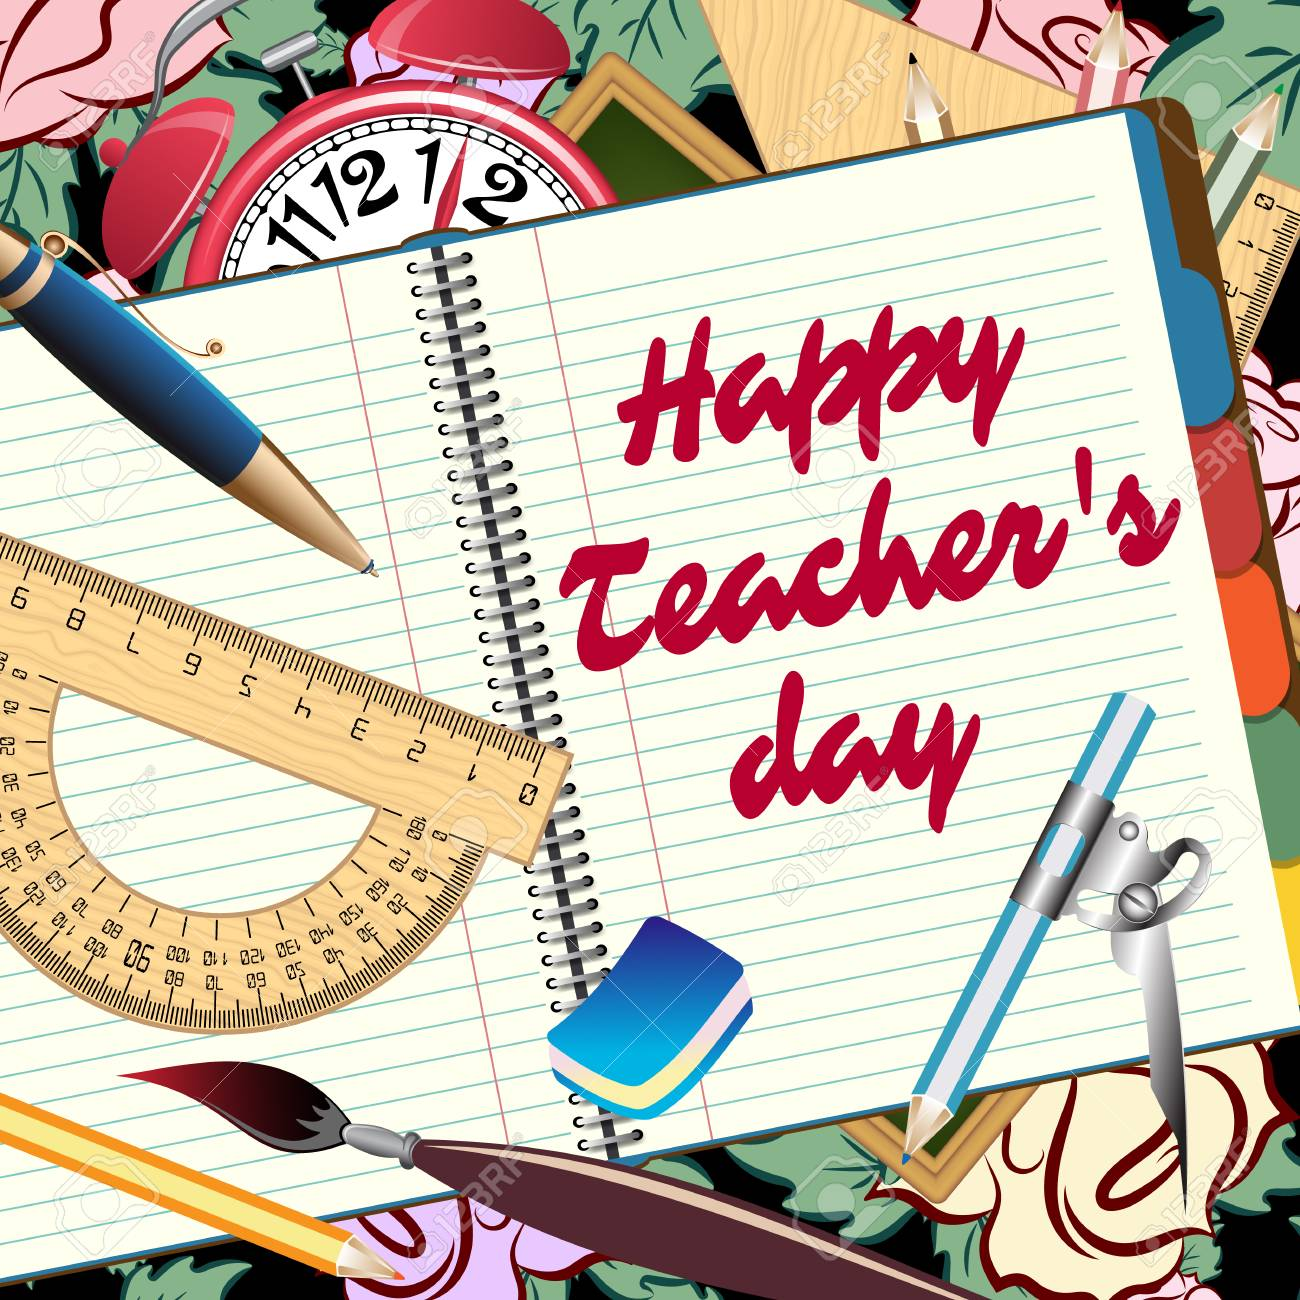 Happy Teachers Day Greeting Card Abstract Poster With Pencils